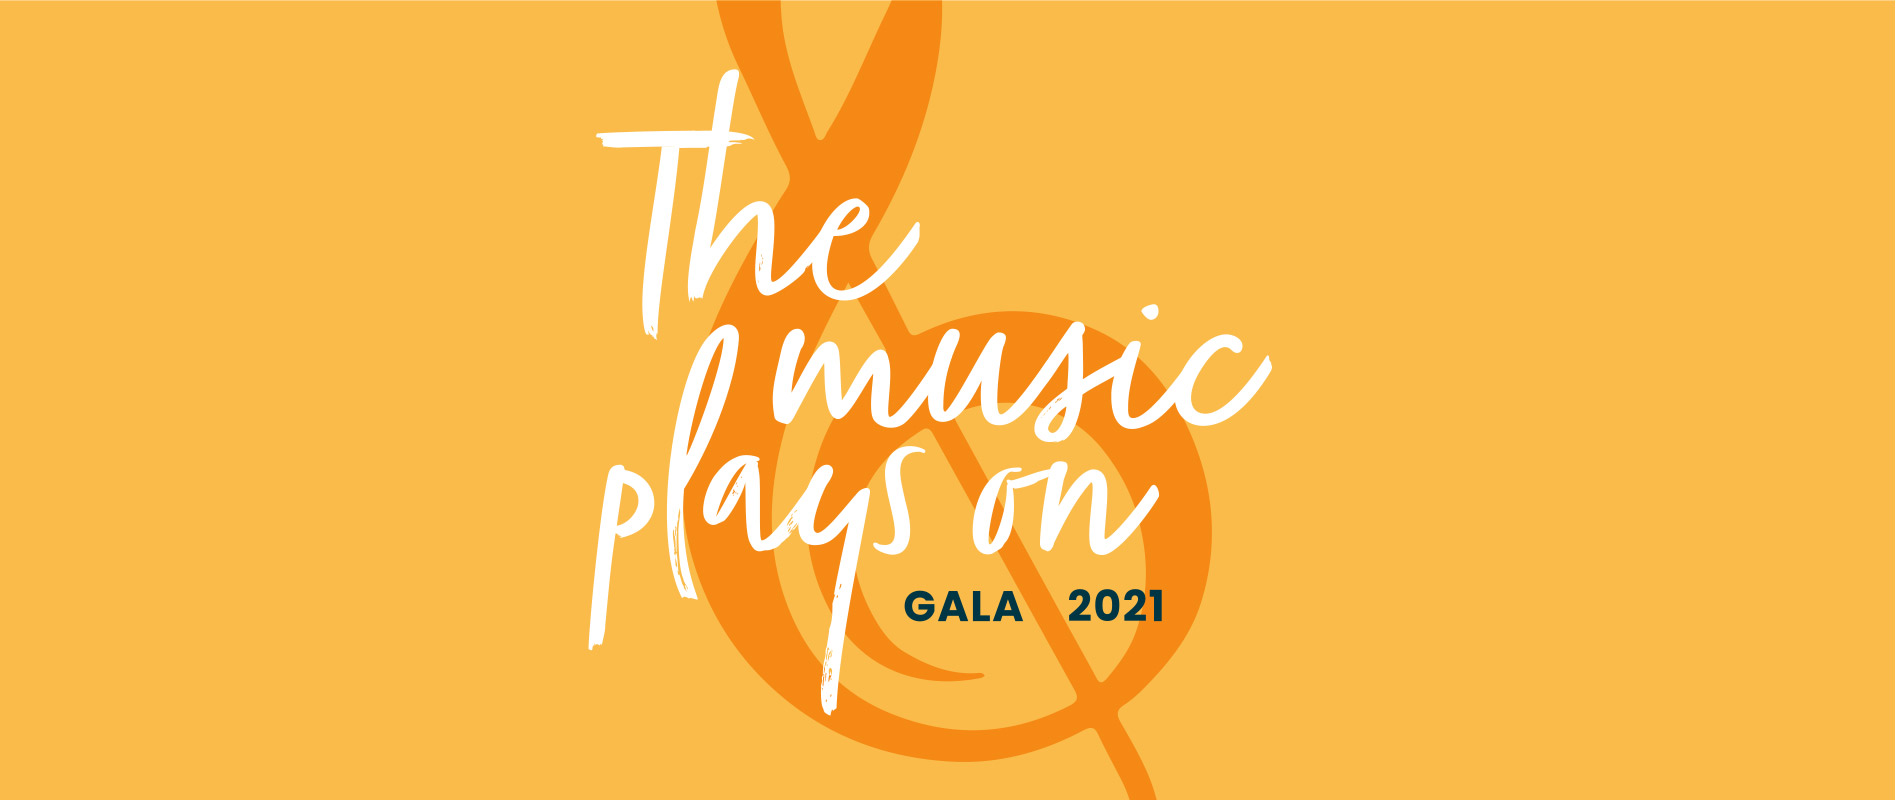 Gala 2021: The Music Plays On